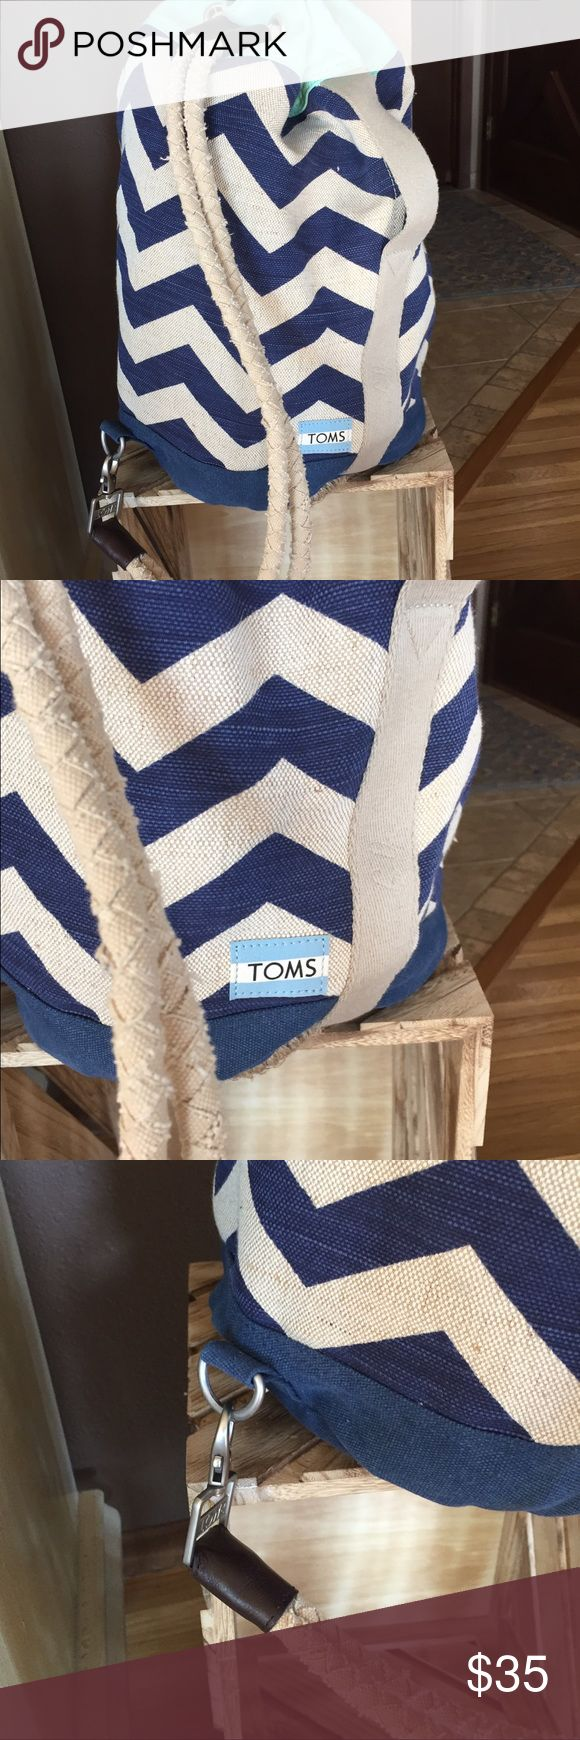 TOMS backpack TOMS backpack...navy and cream chevron striped with light green accents...drawstring straps attached with dog snap on bottom end...inside zip pocket..never used TOMS Bags Backpacks